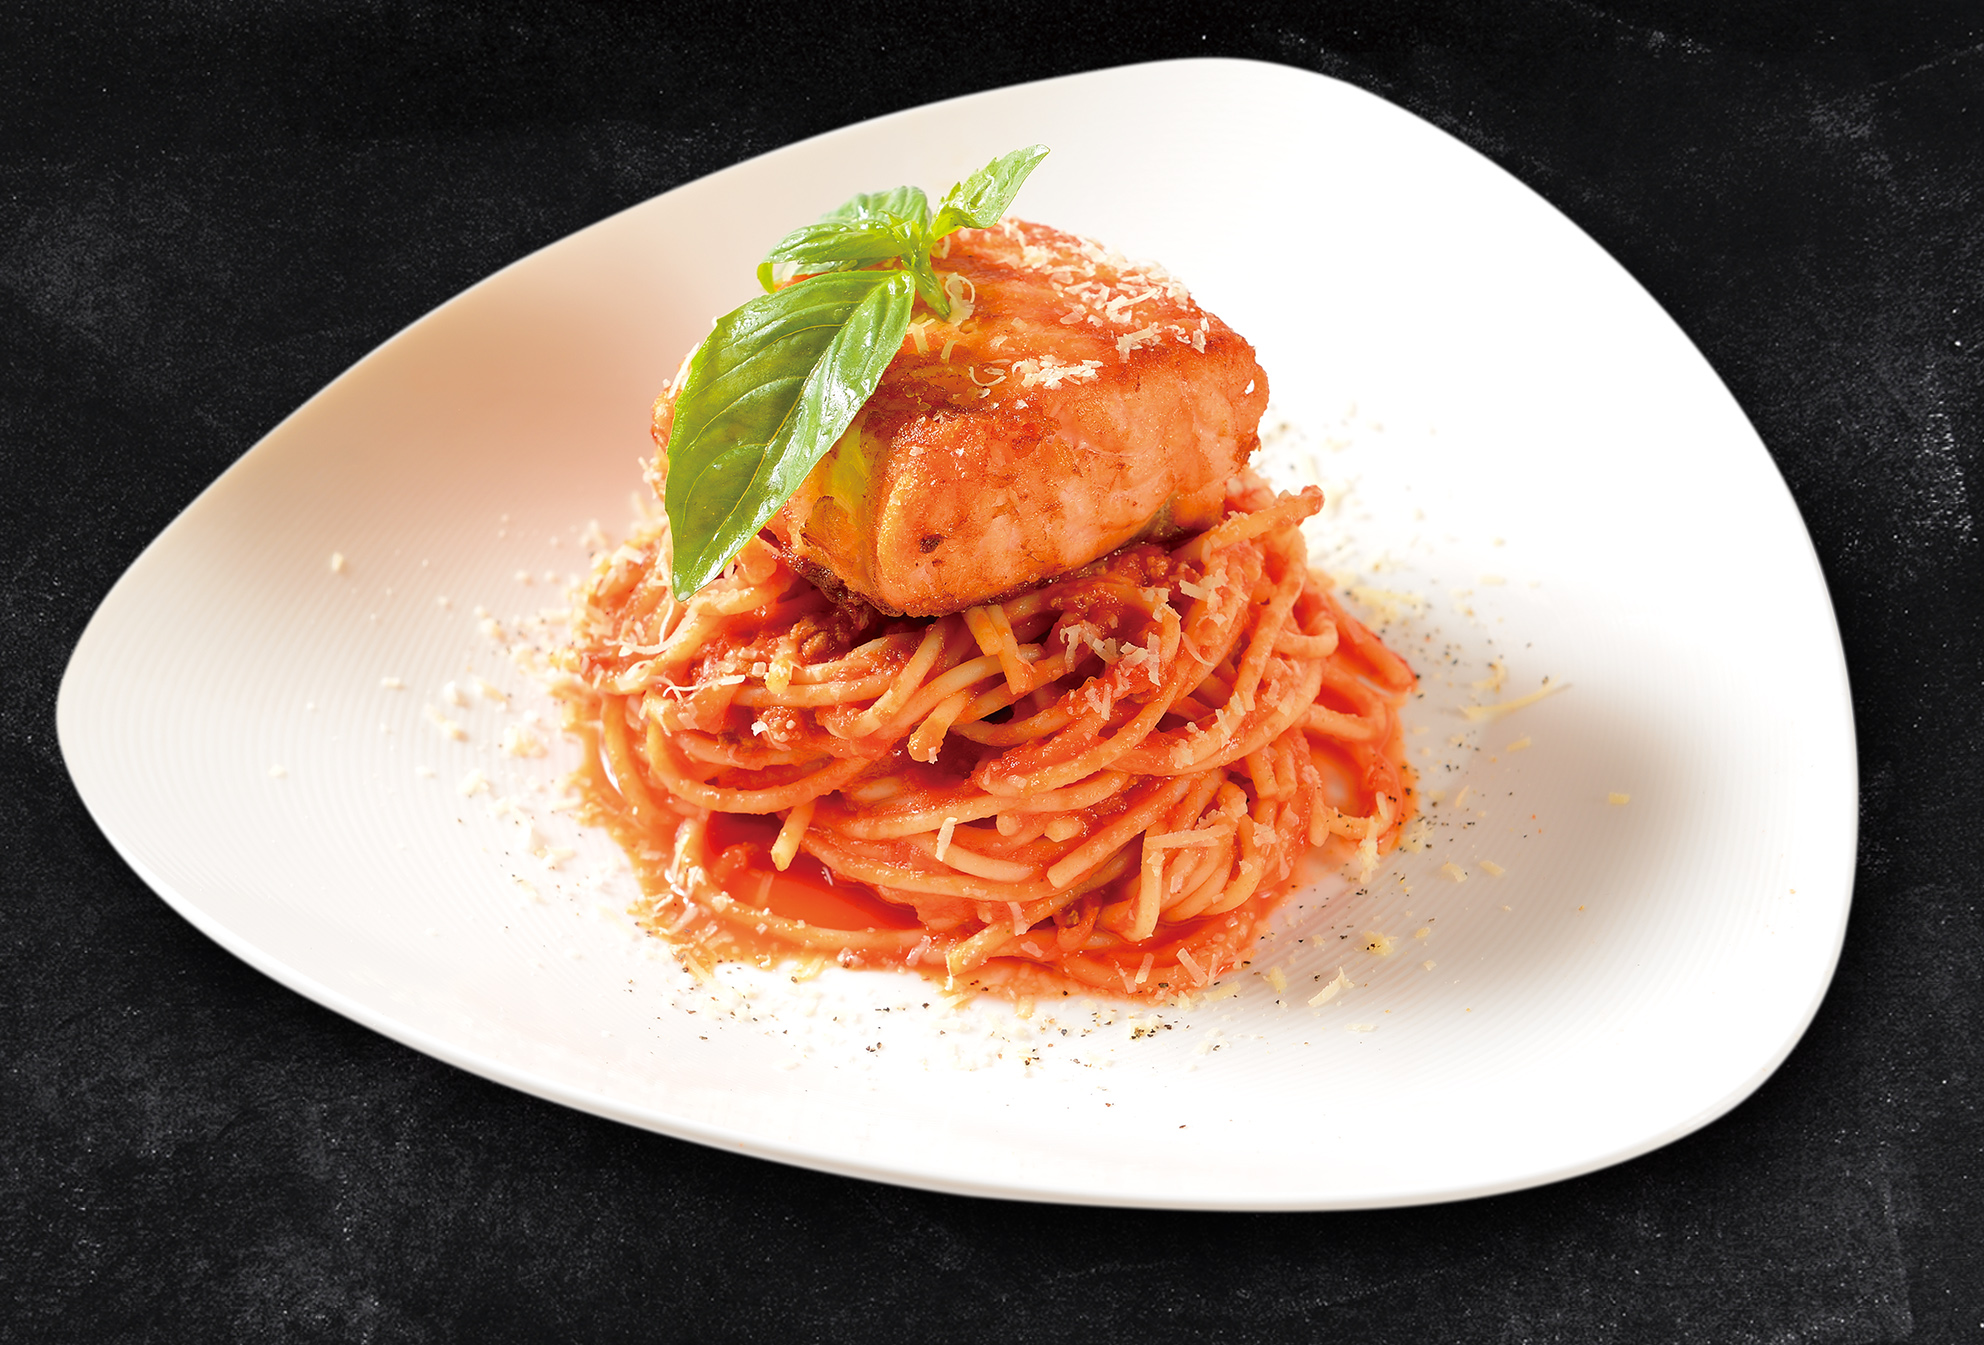 <b>Grilled Salmon Pasta with Creamy Tomato Sauce</b><br/>